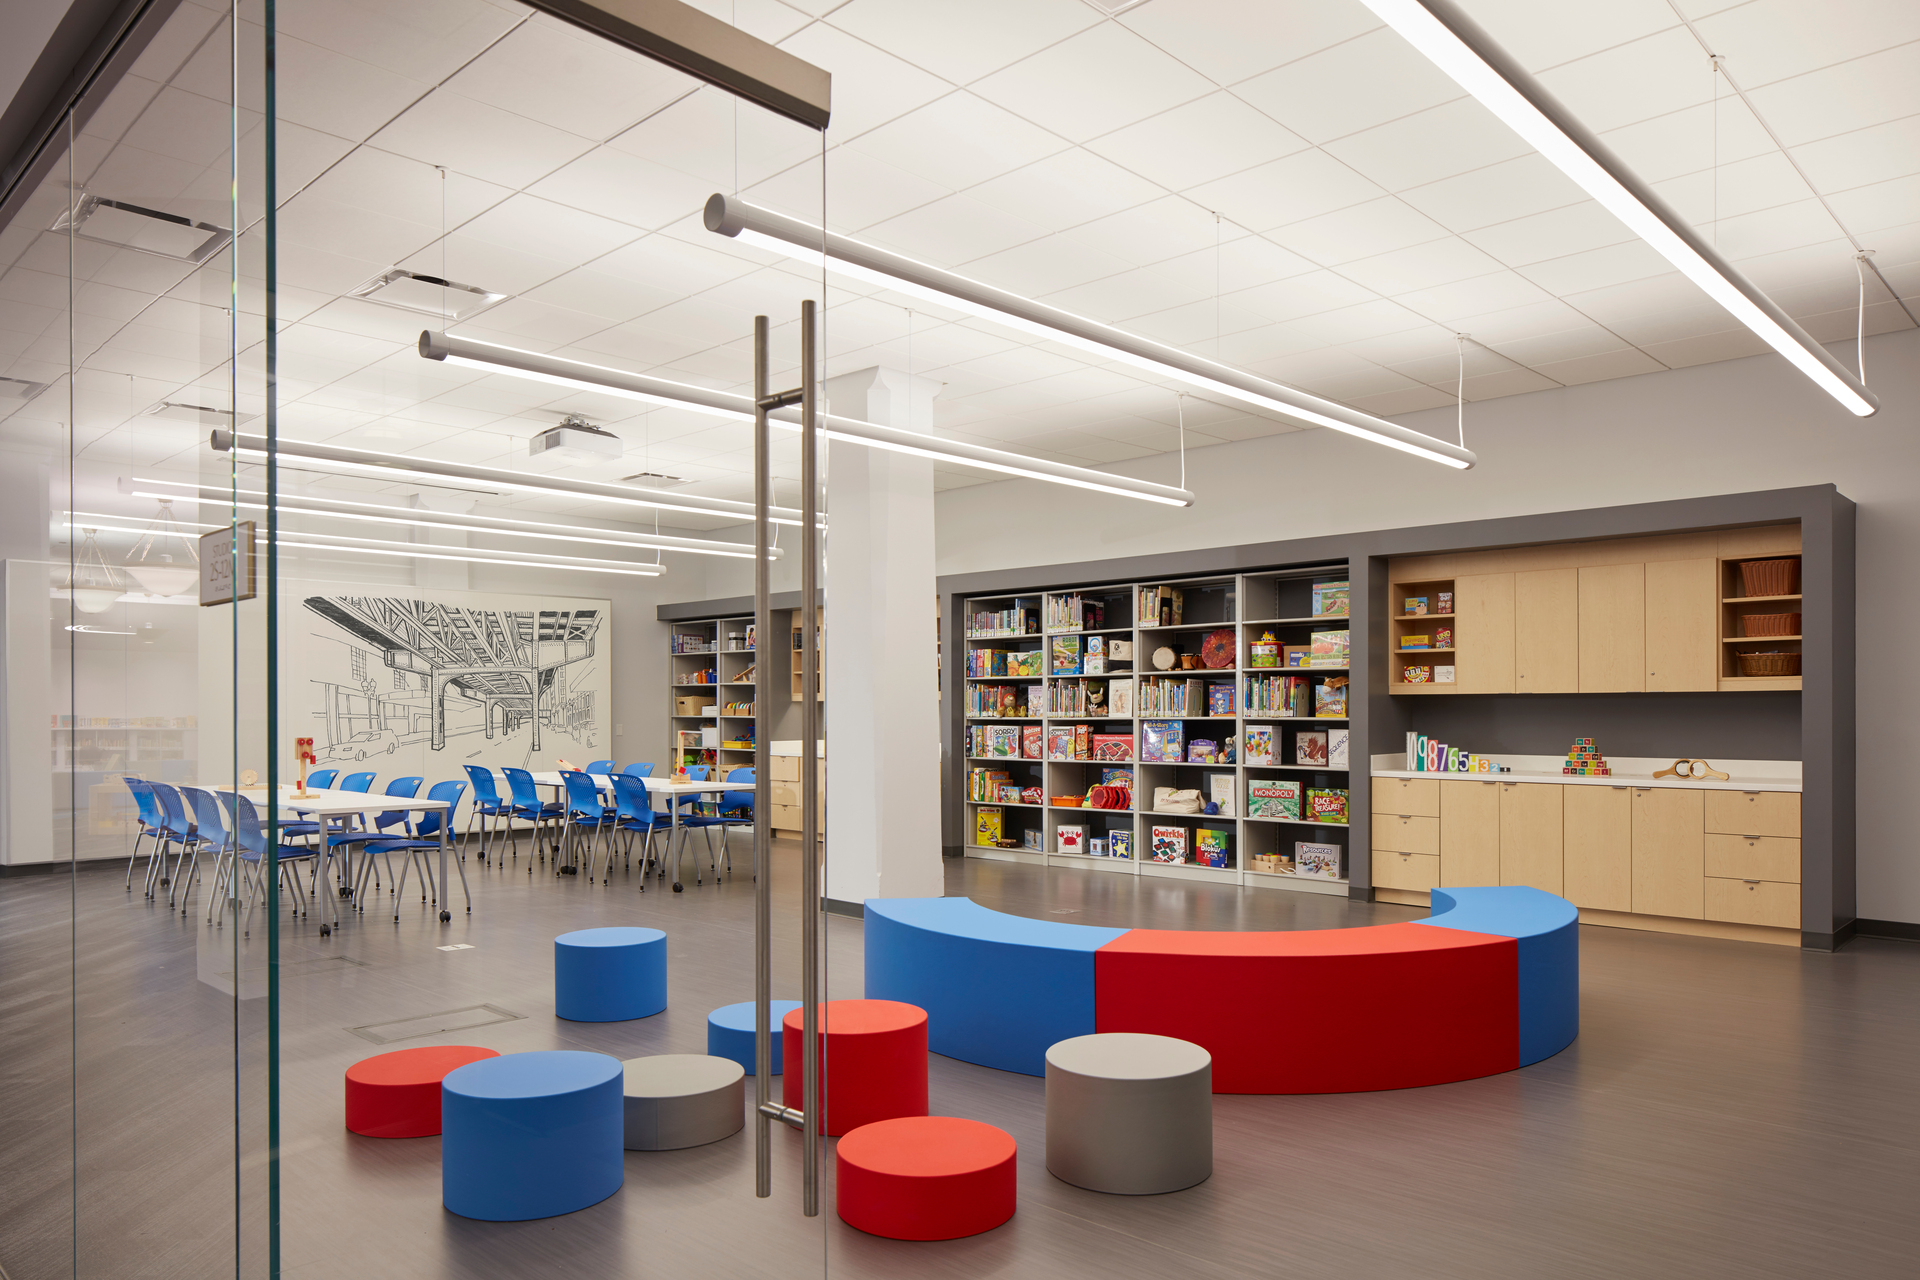 The Chicago Public Library was constructed in 1873. As a Chicagoland Historical Landmark the building has gone through several renovations during its lifetime.  Our In Floor Cellular Raceway System was implemented during one of the library renovations that took place in the late 1980's.  These beautiful photos are of the 2017 remodel which is now the Harold Washington Children's Library Center. It'sjust one of the projects that demonstrates that that our system holds up to the test of time.  © Tom Harris | Design by Gensler